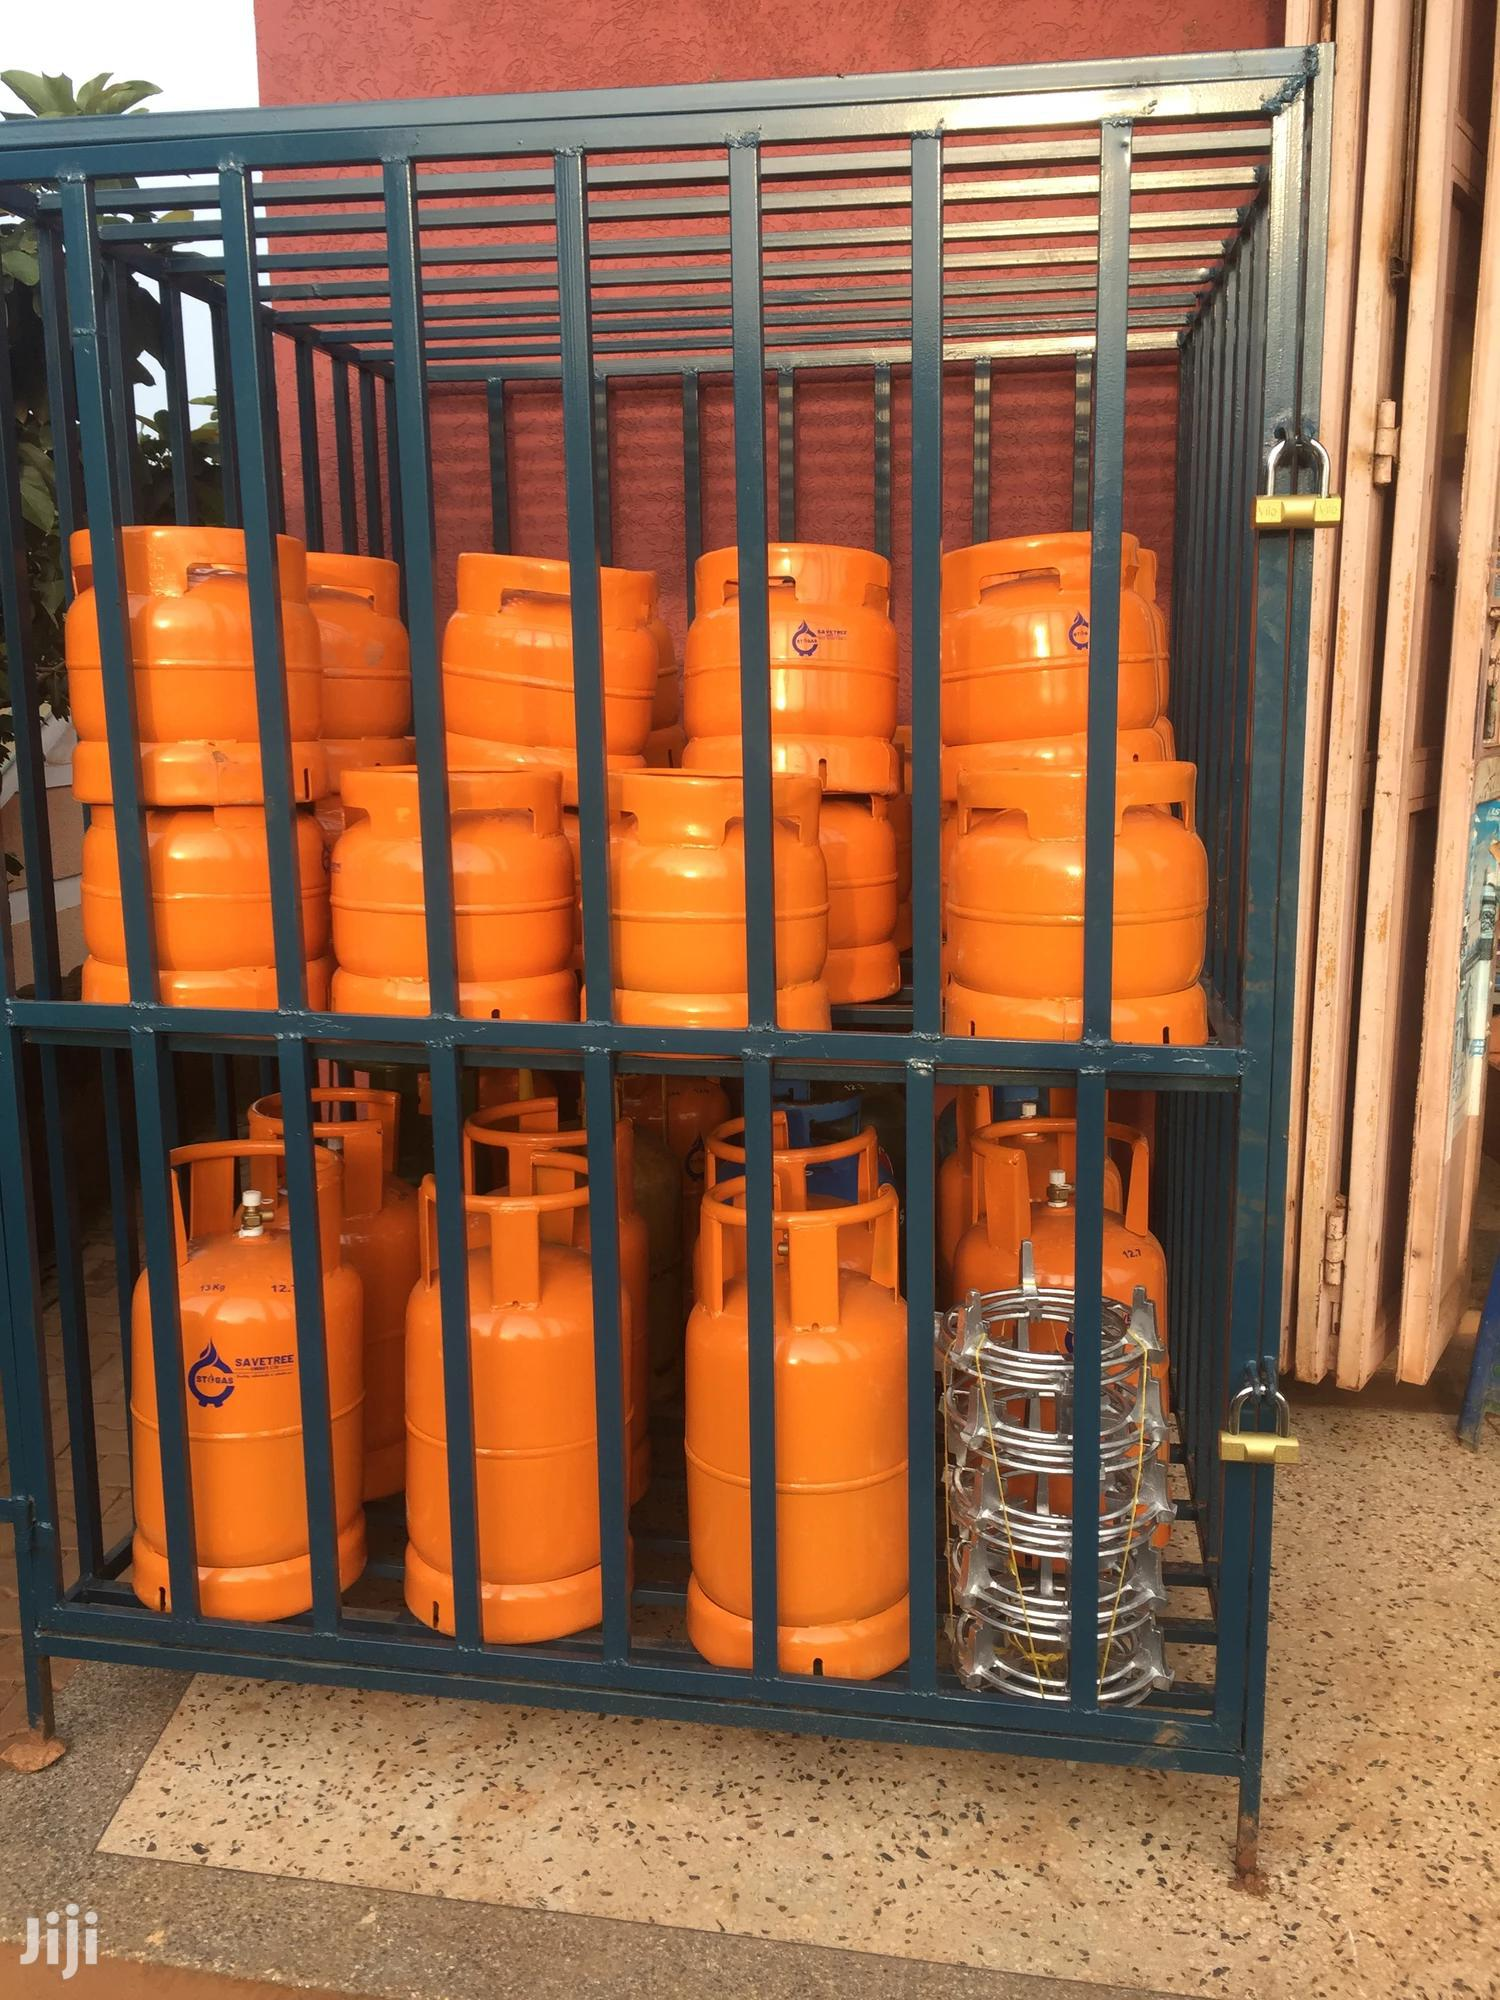 Buying Of New Gas Cylinders And Refilling Old Ones | Kitchen Appliances for sale in Wakiso, Central Region, Uganda